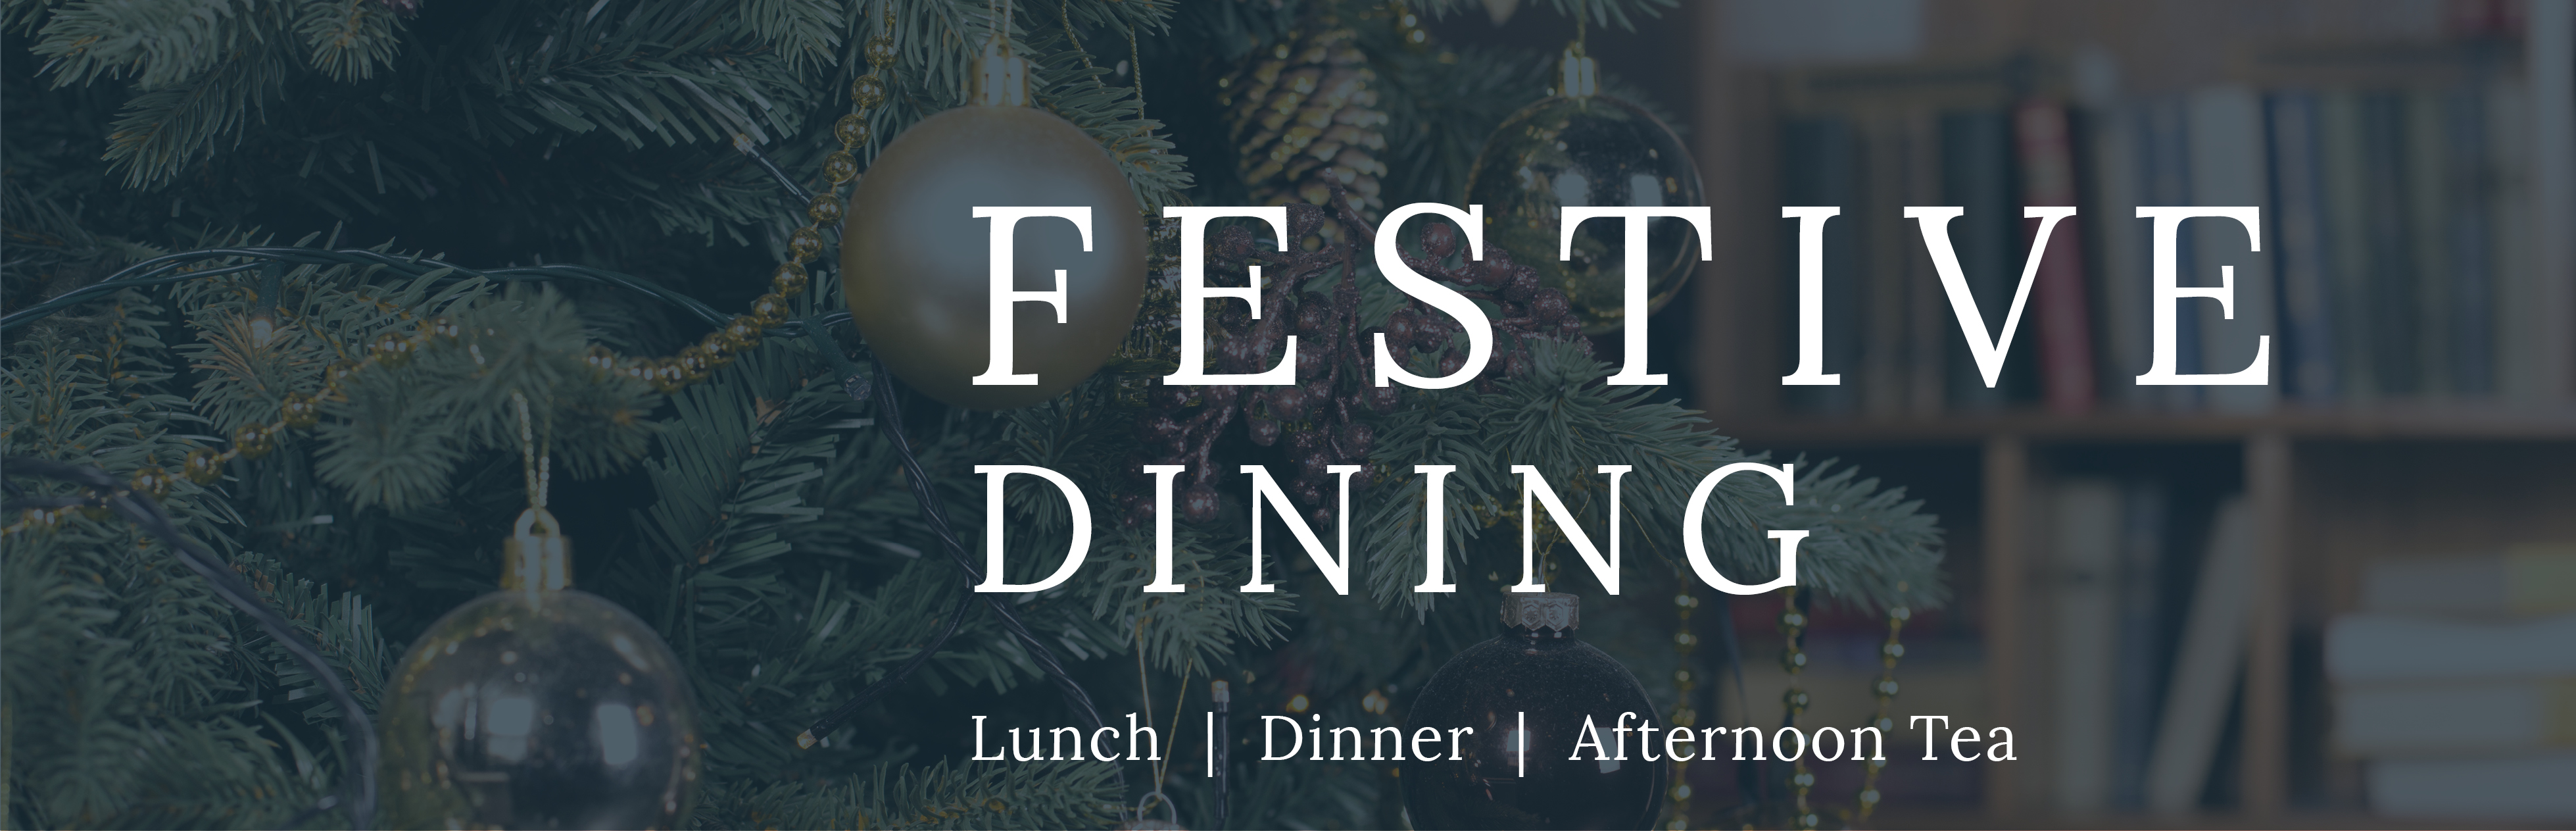 Take a look at our festive menus